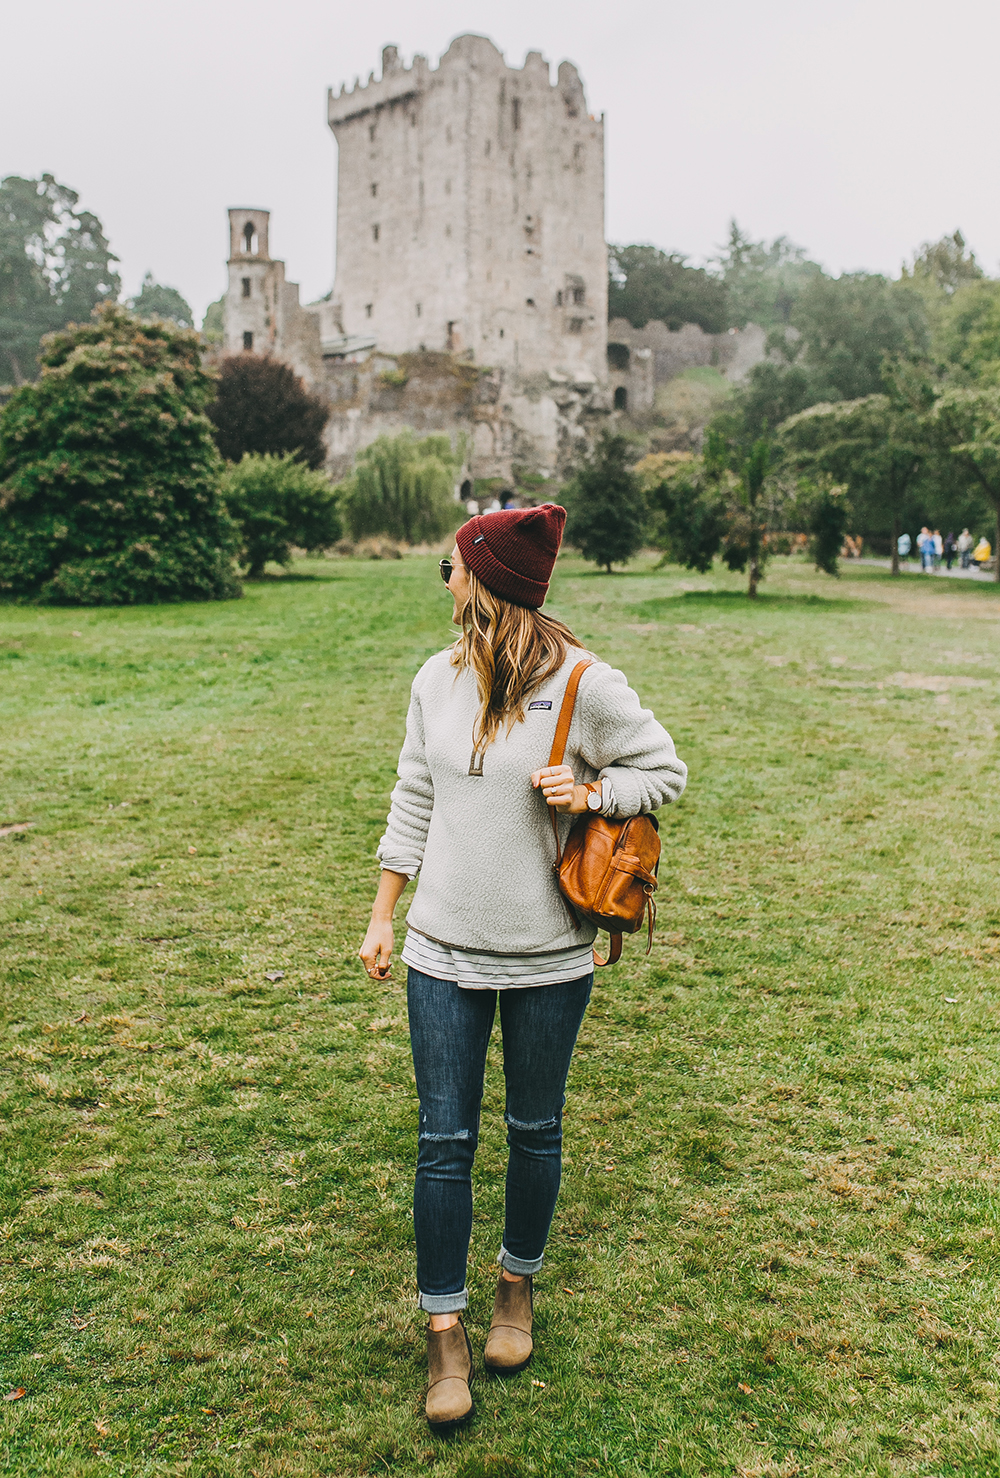 livvyland-blog-olivia-watson-austin-texas-fashion-lifestyle-travel-blogger-patagonia-retro-pile-fleece-pullover-backcountry-outfit-blarney-castle-cork-ireland-8